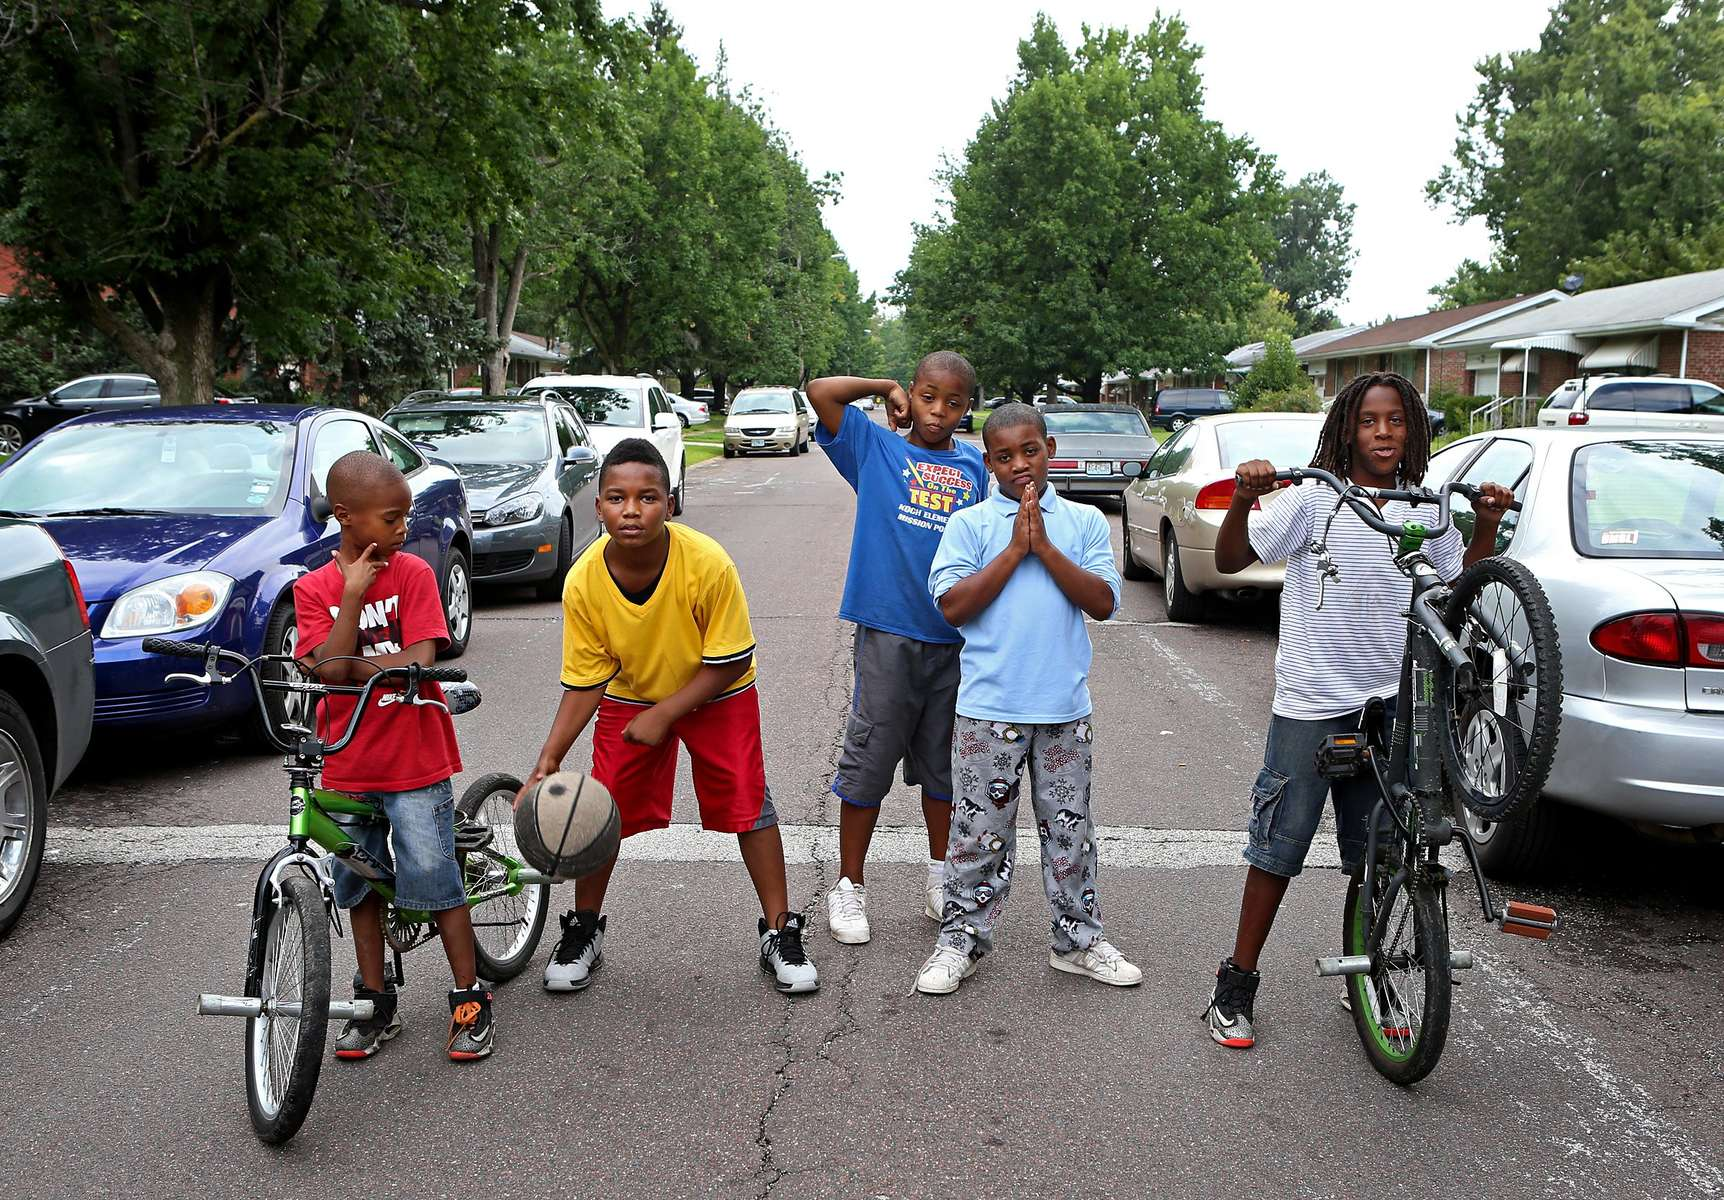 Friends Jaishyne Brister, 8, Jermell Sane, 11, Martez Bryant, 13, Armoni Whitaker, 10, and Chase Brister, 12, pose for a picture on Ward Drive in Ferguson a few blocks away from the honking and chants of protesters at the Mike Brown protests at the QuikTrip on Sunday, Aug. 17, 2014.